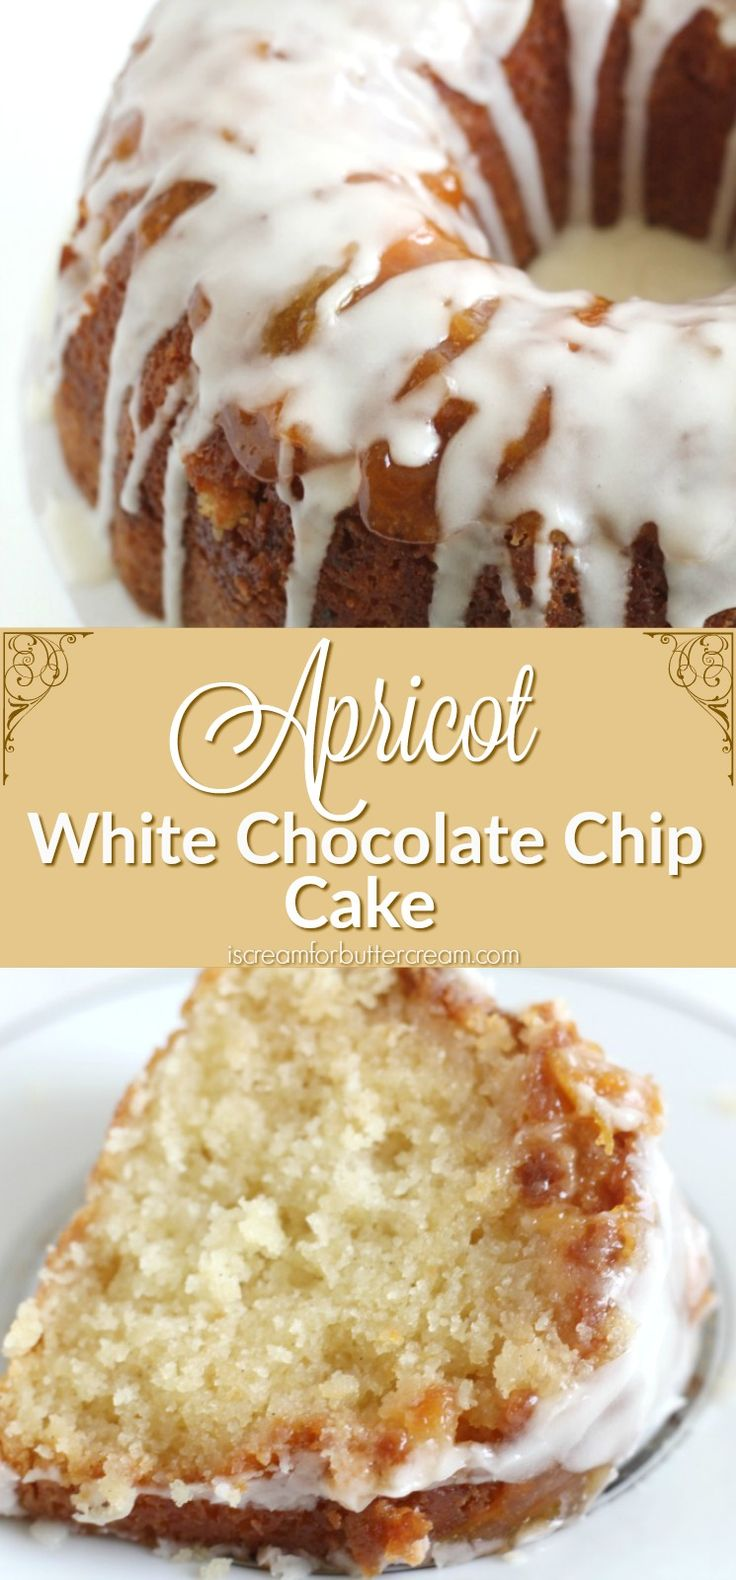 This apricot white chocolate chip cake is moist and delicious with the added bonus of an apricot and confectioner's sugar glaze on top.